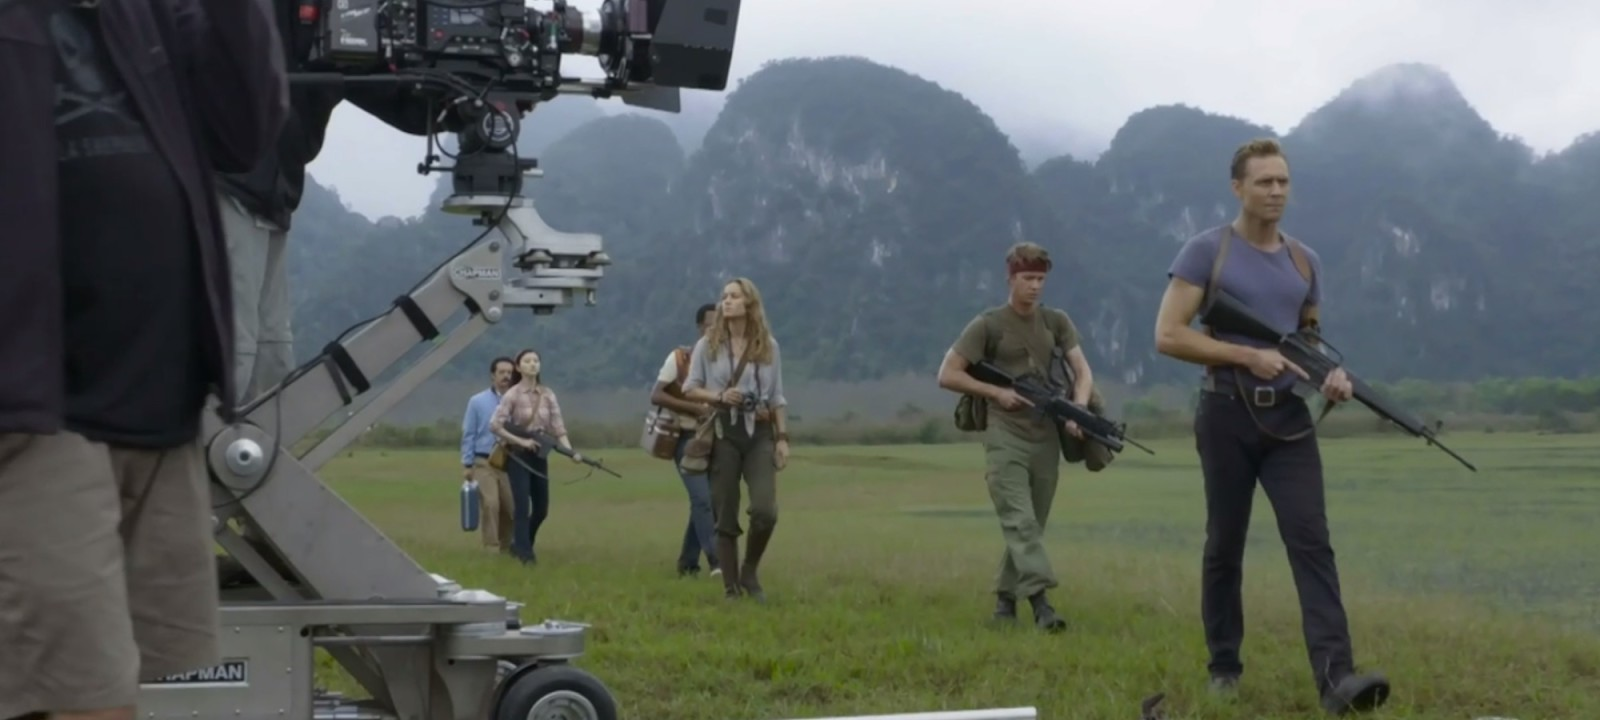 Tom Hiddleston and Brie Larson on set of 'Kong: Skull Island'